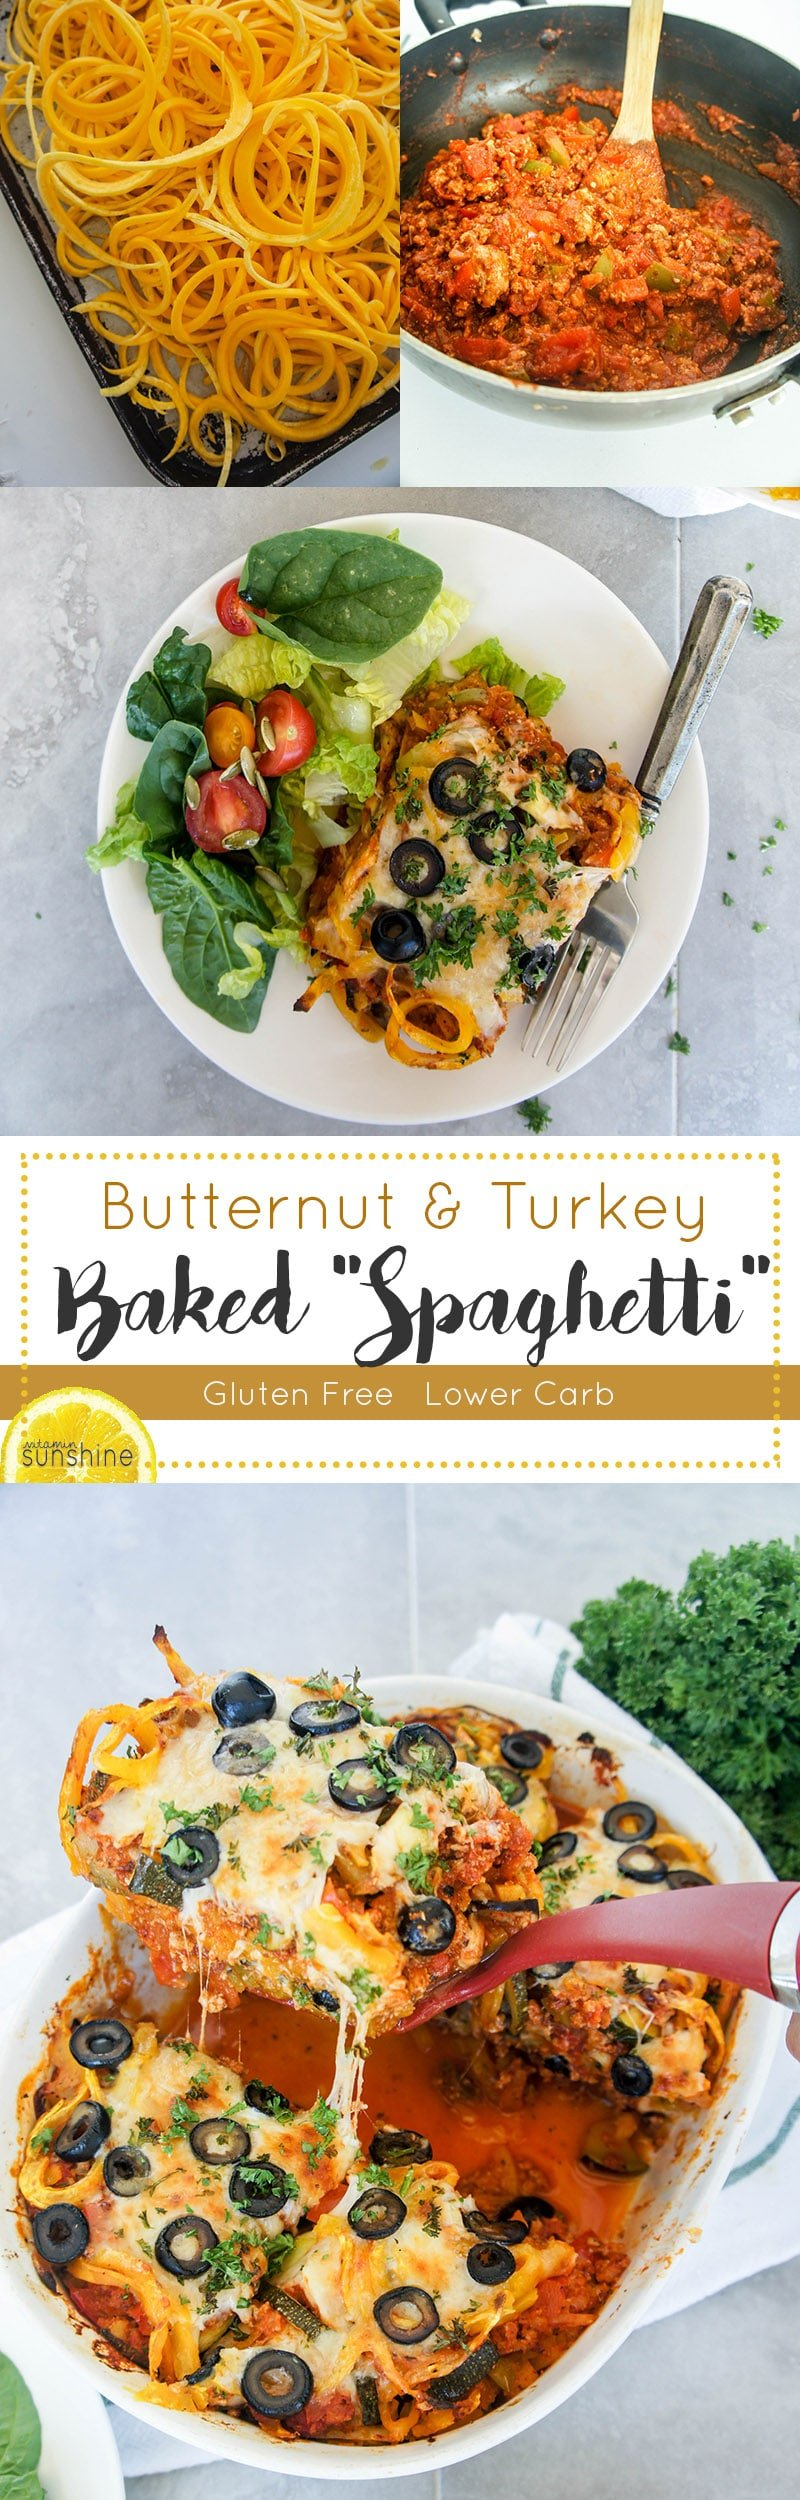 """Butternut and Turkey Baked """"Spaghetti"""" / This warming and healthy fall meal calls for spiralized butternut squash instead of noodles!"""